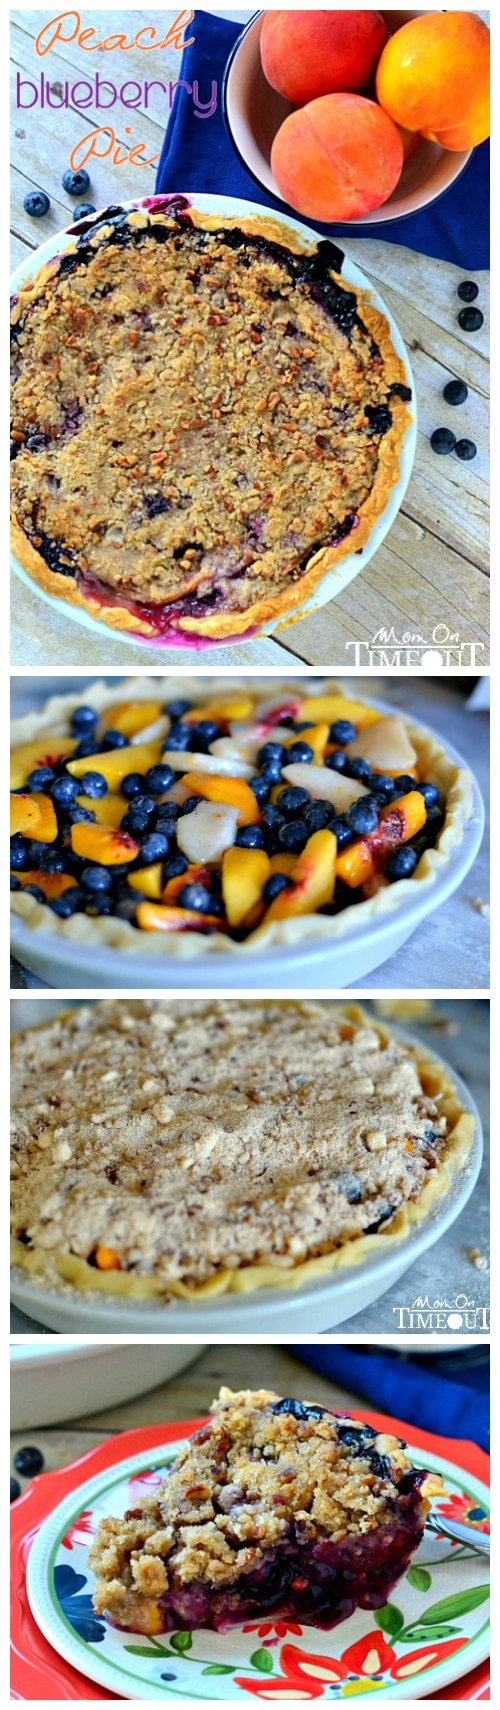 Peach Blueberry Pie with Pecan Streusel Topping made with fresh peaches and blueberries. This is exactly what a summer pie should look and taste like. Don't forget the vanilla ice cream! // Mom On Timeout